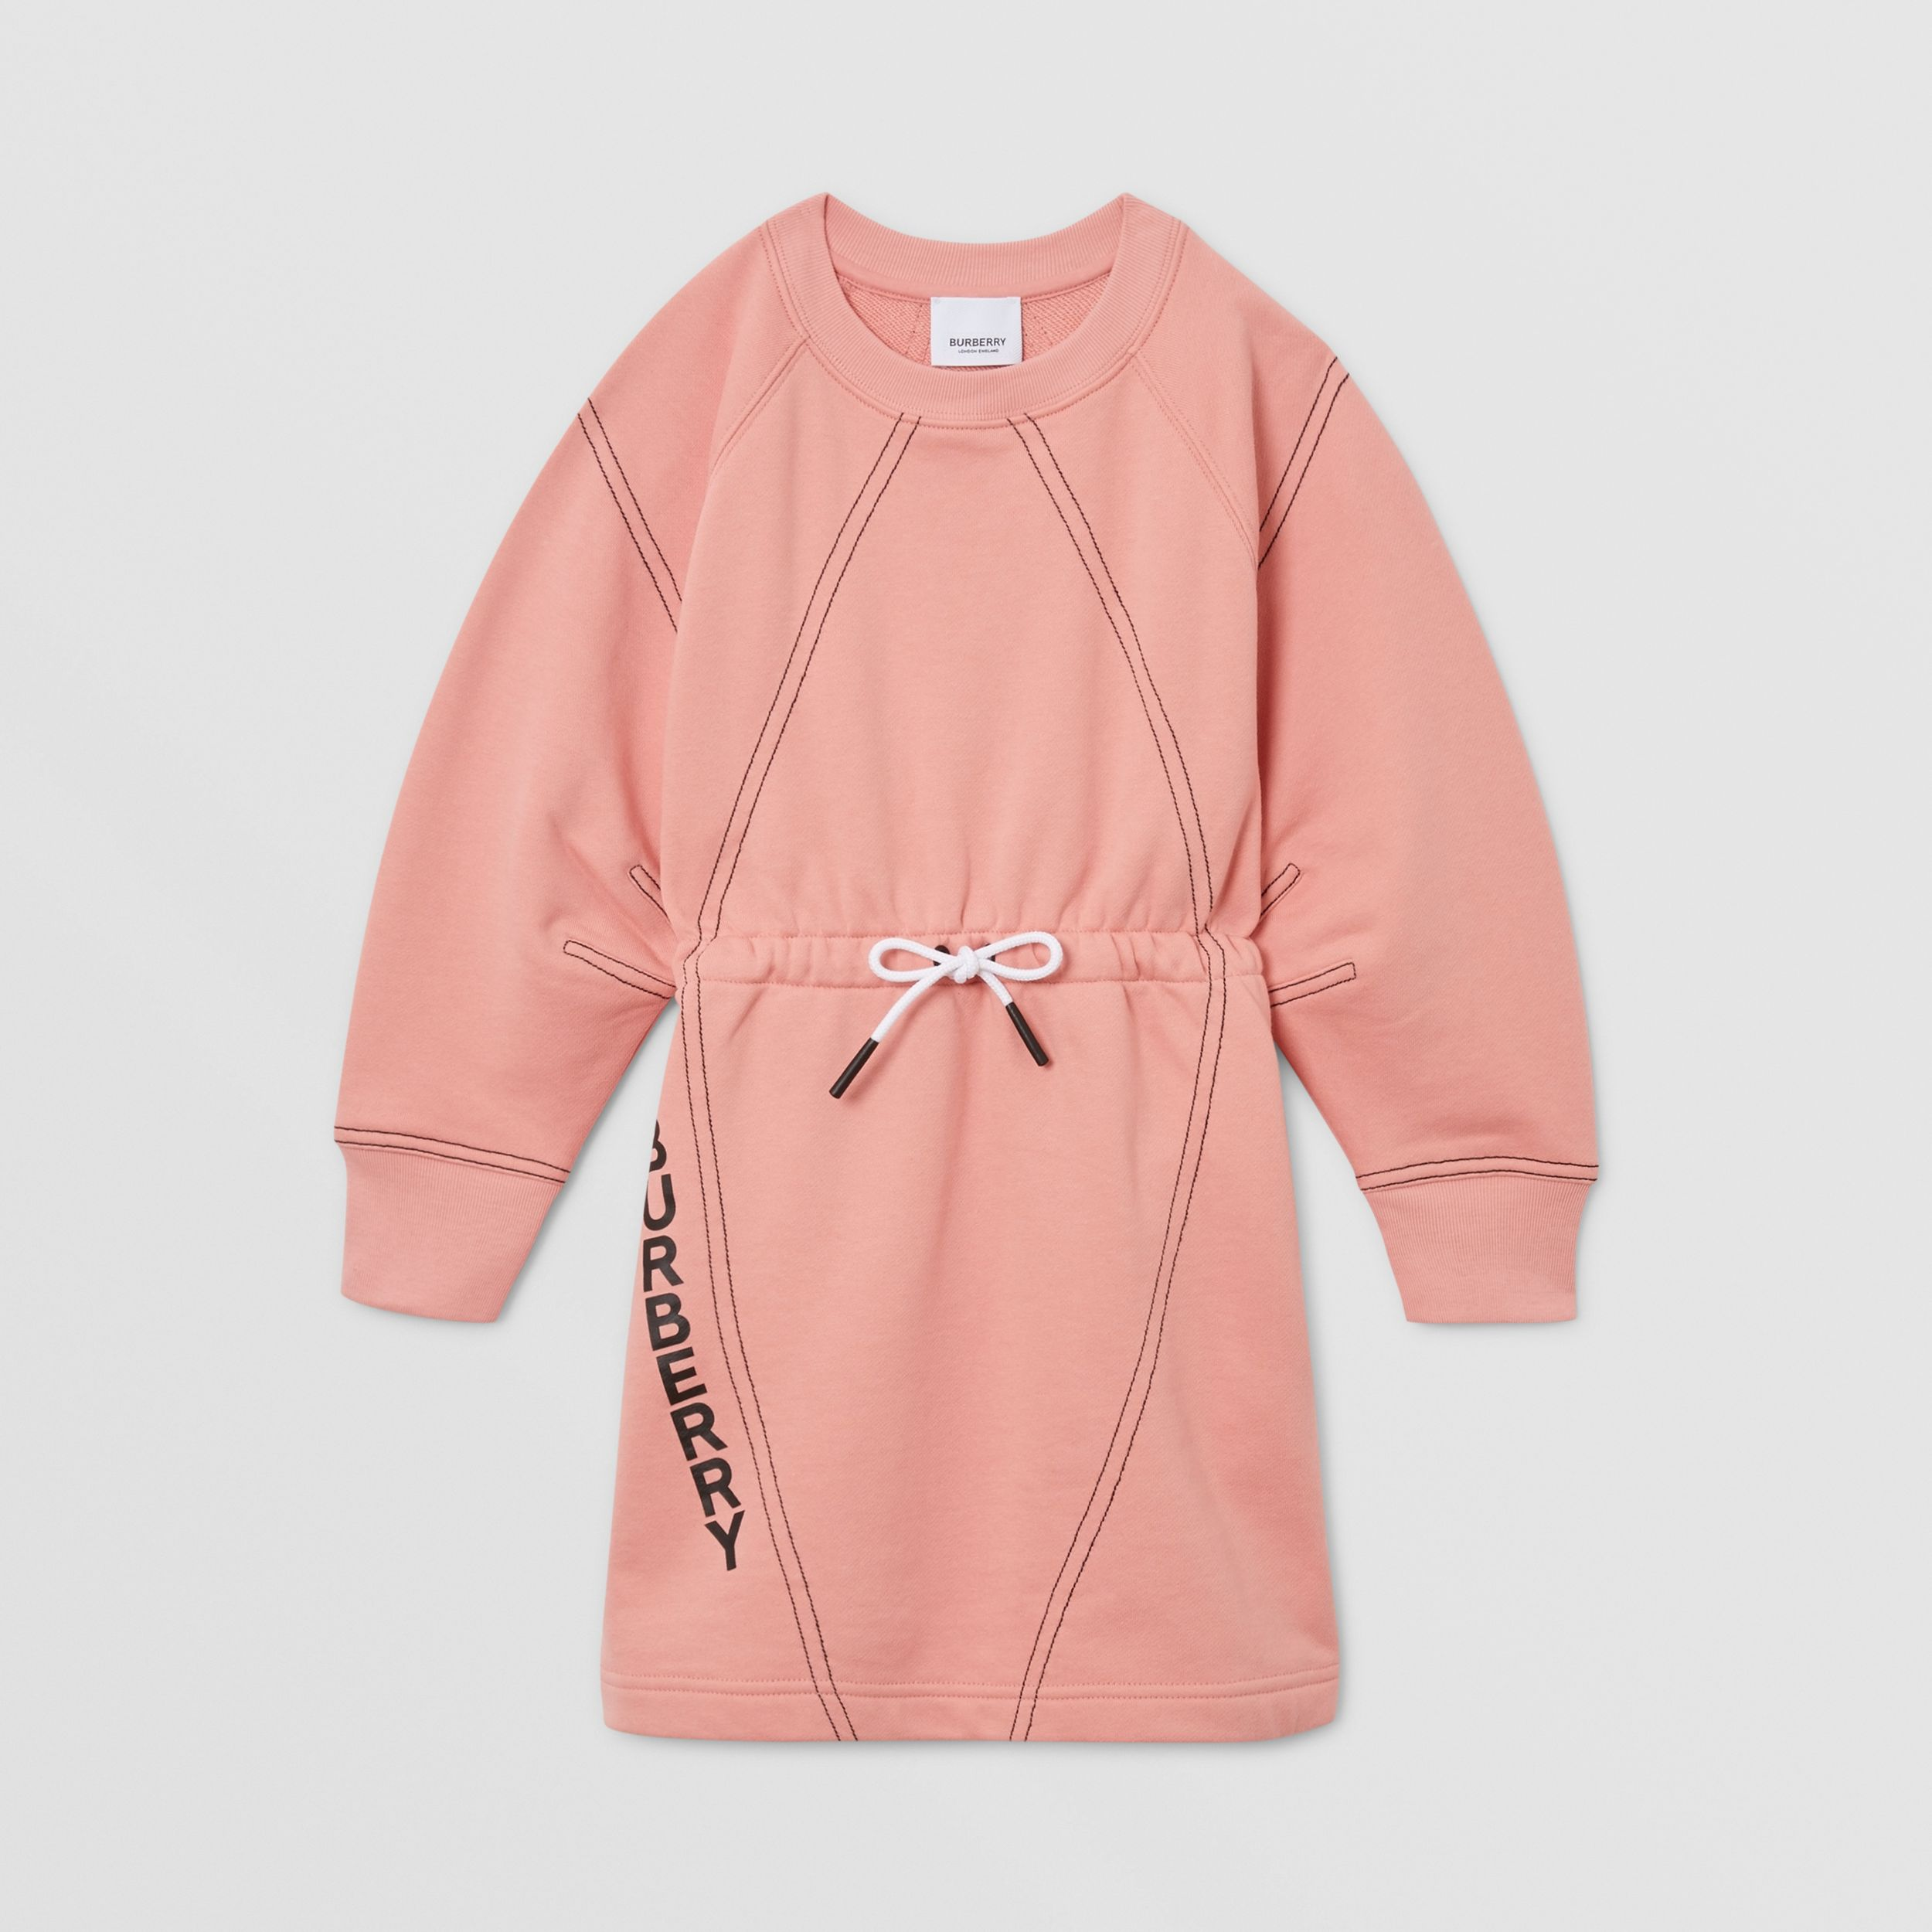 Logo Print Cotton Sweater Dress in Peach | Burberry Australia - 1